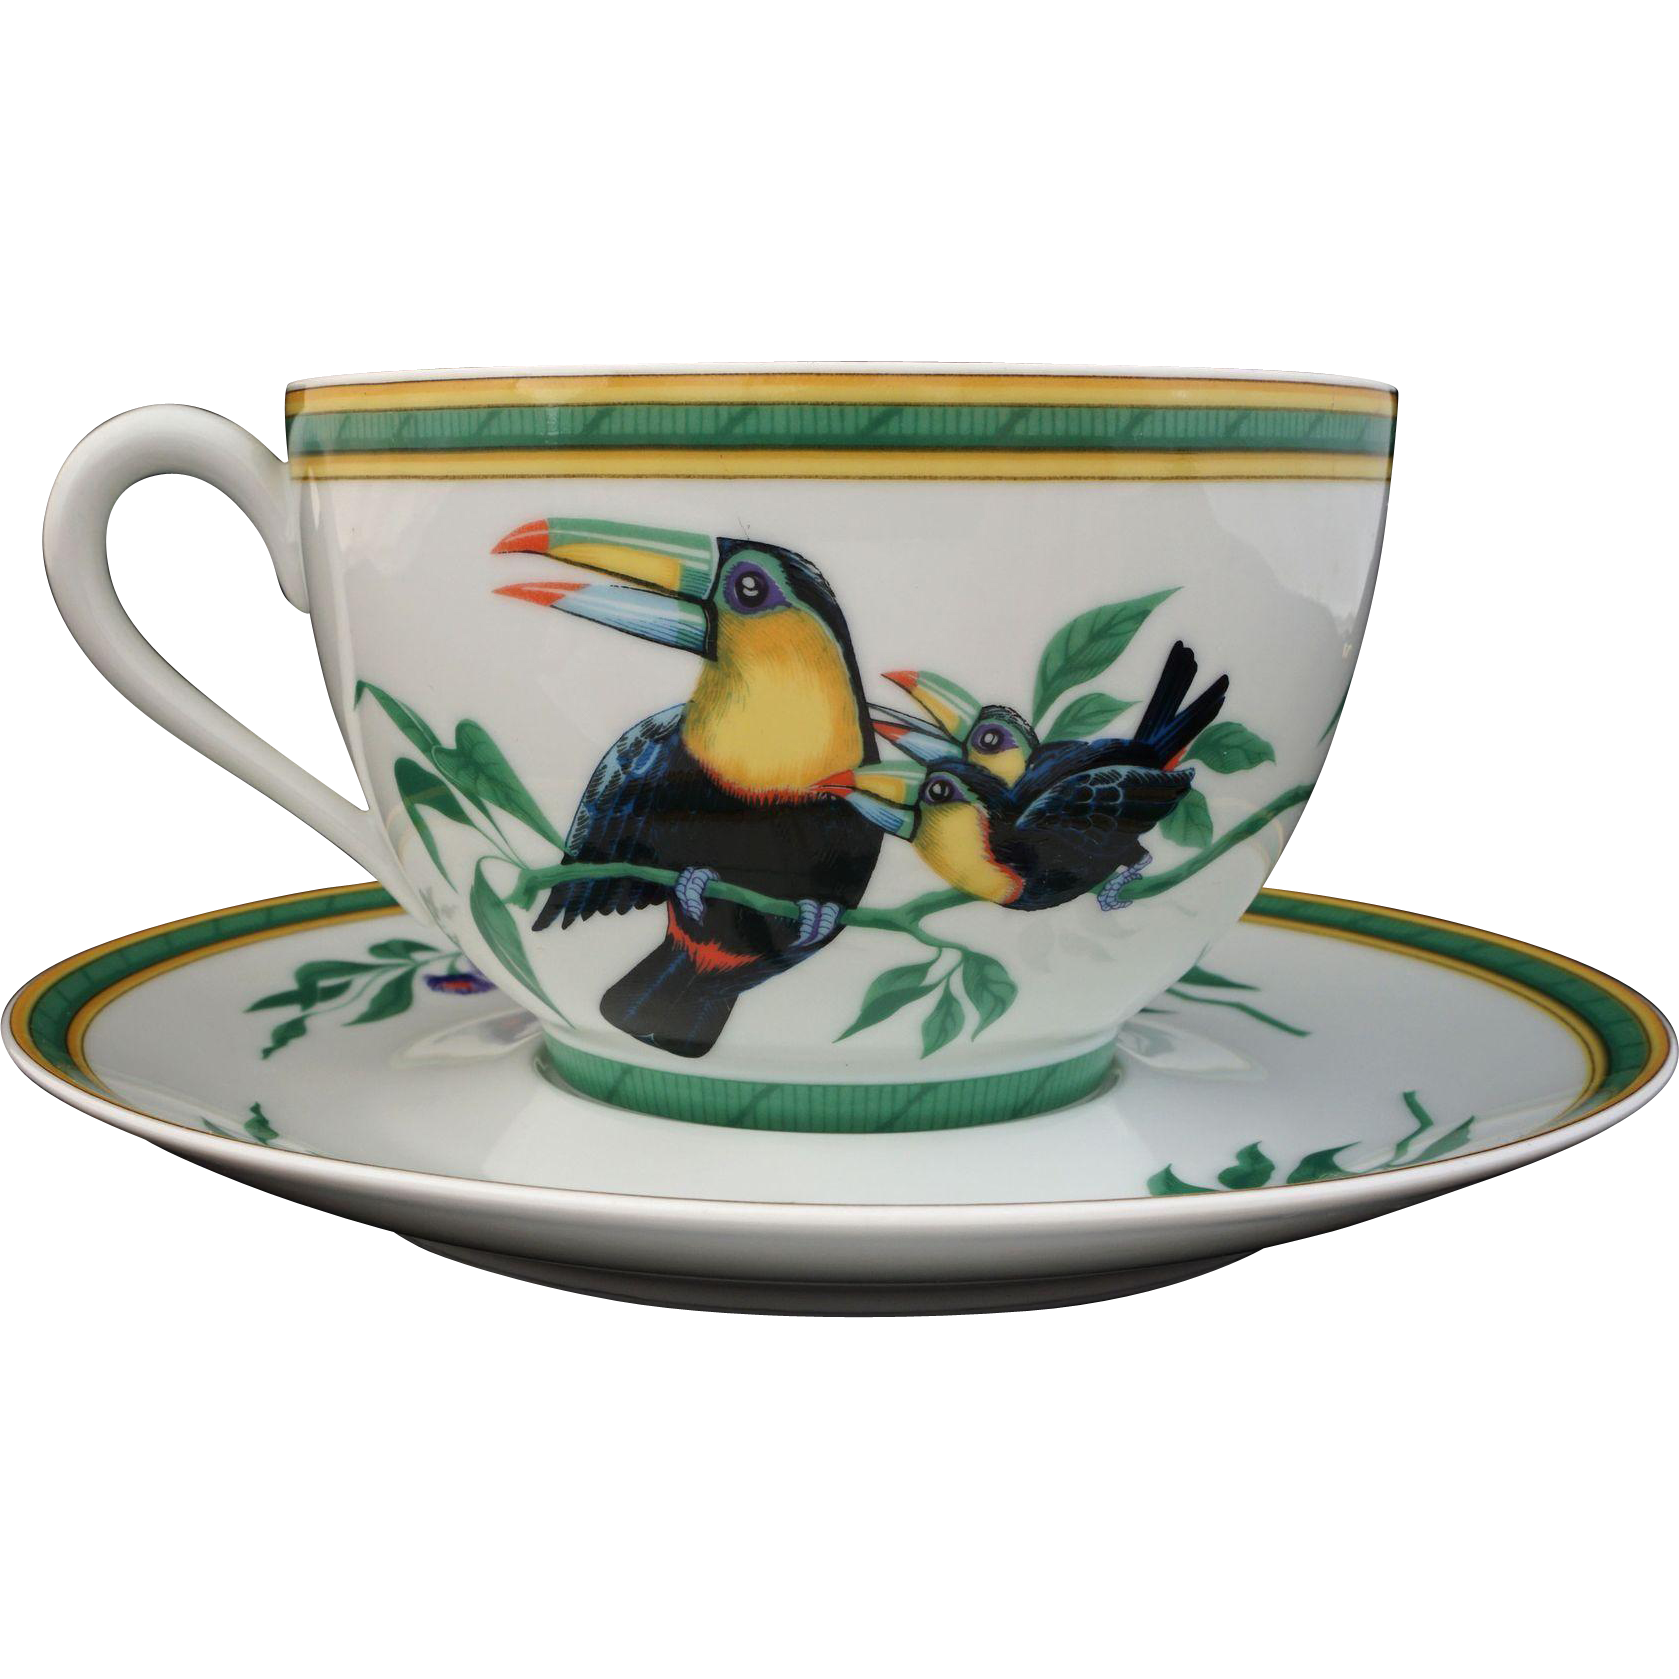 Hermes Toucan Pattern Large Cup and Saucer Porcelain - 20th Century, France